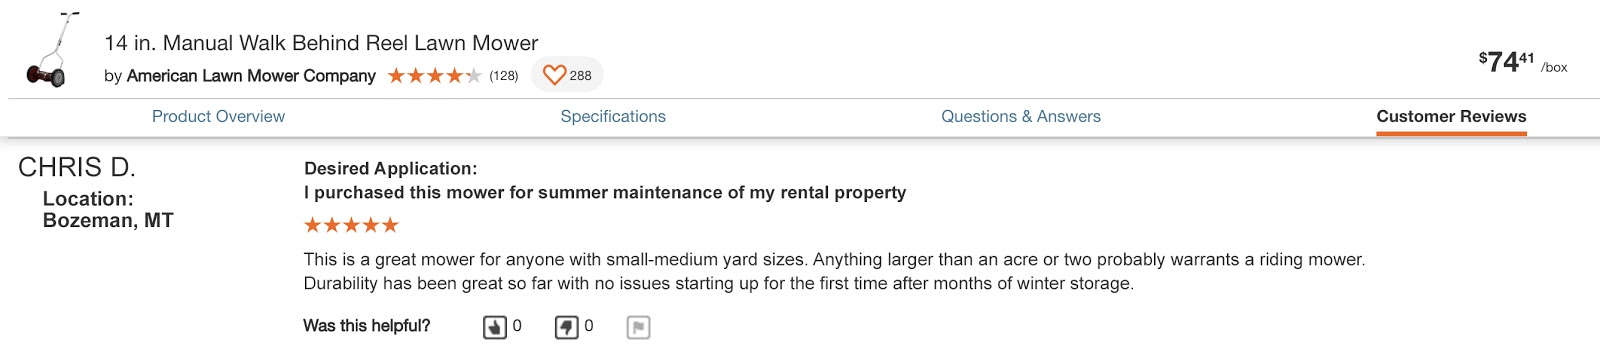 Example of a review that is good